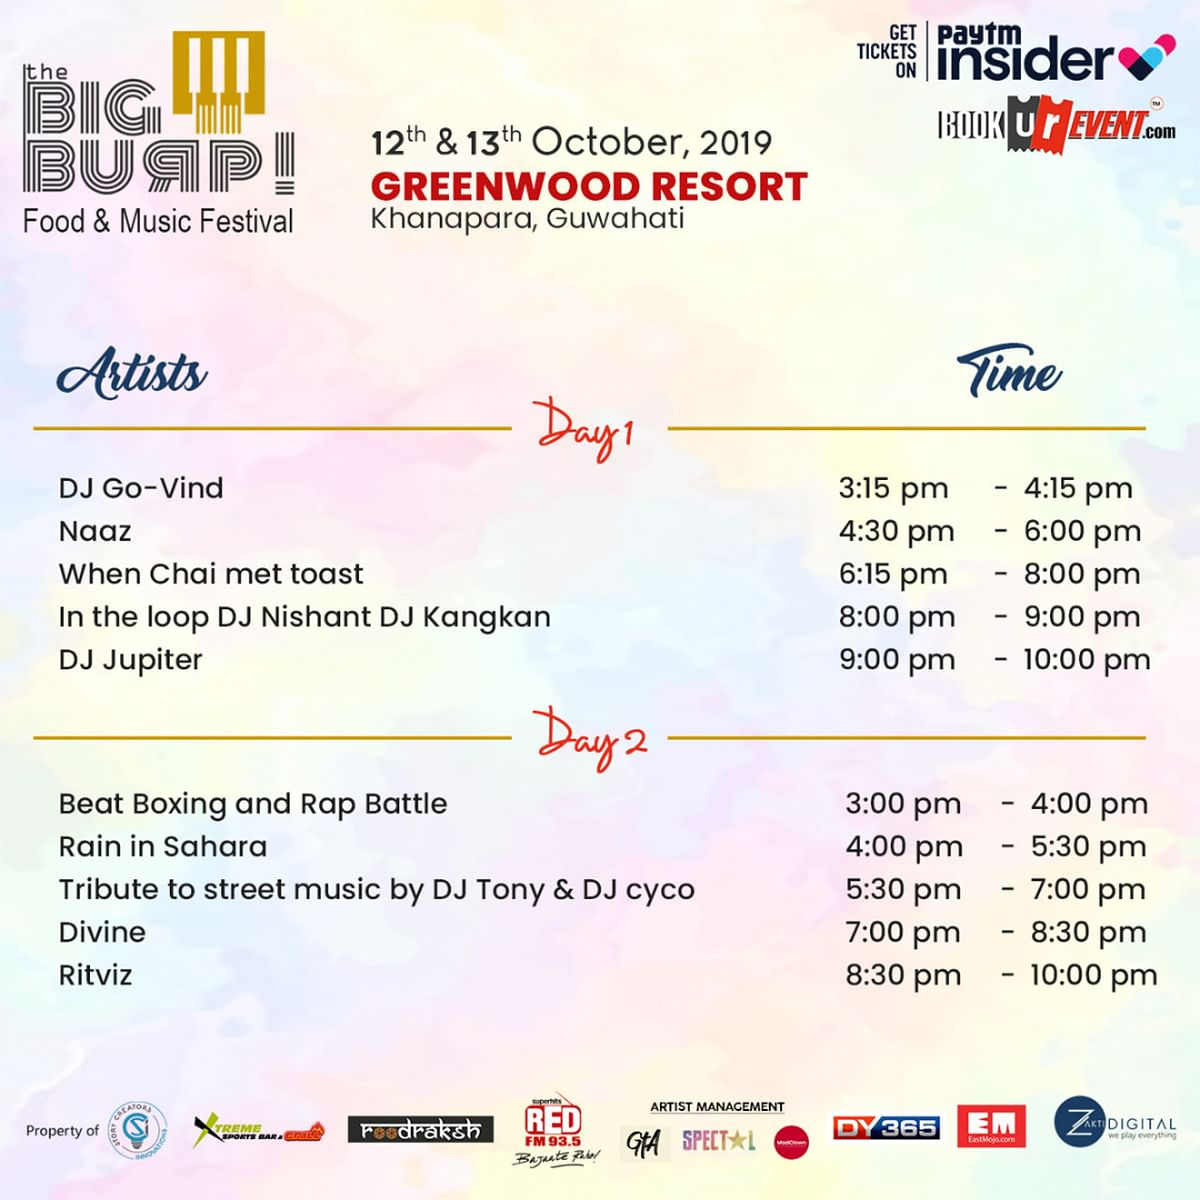 Schedule of events of The Big Burp! festival